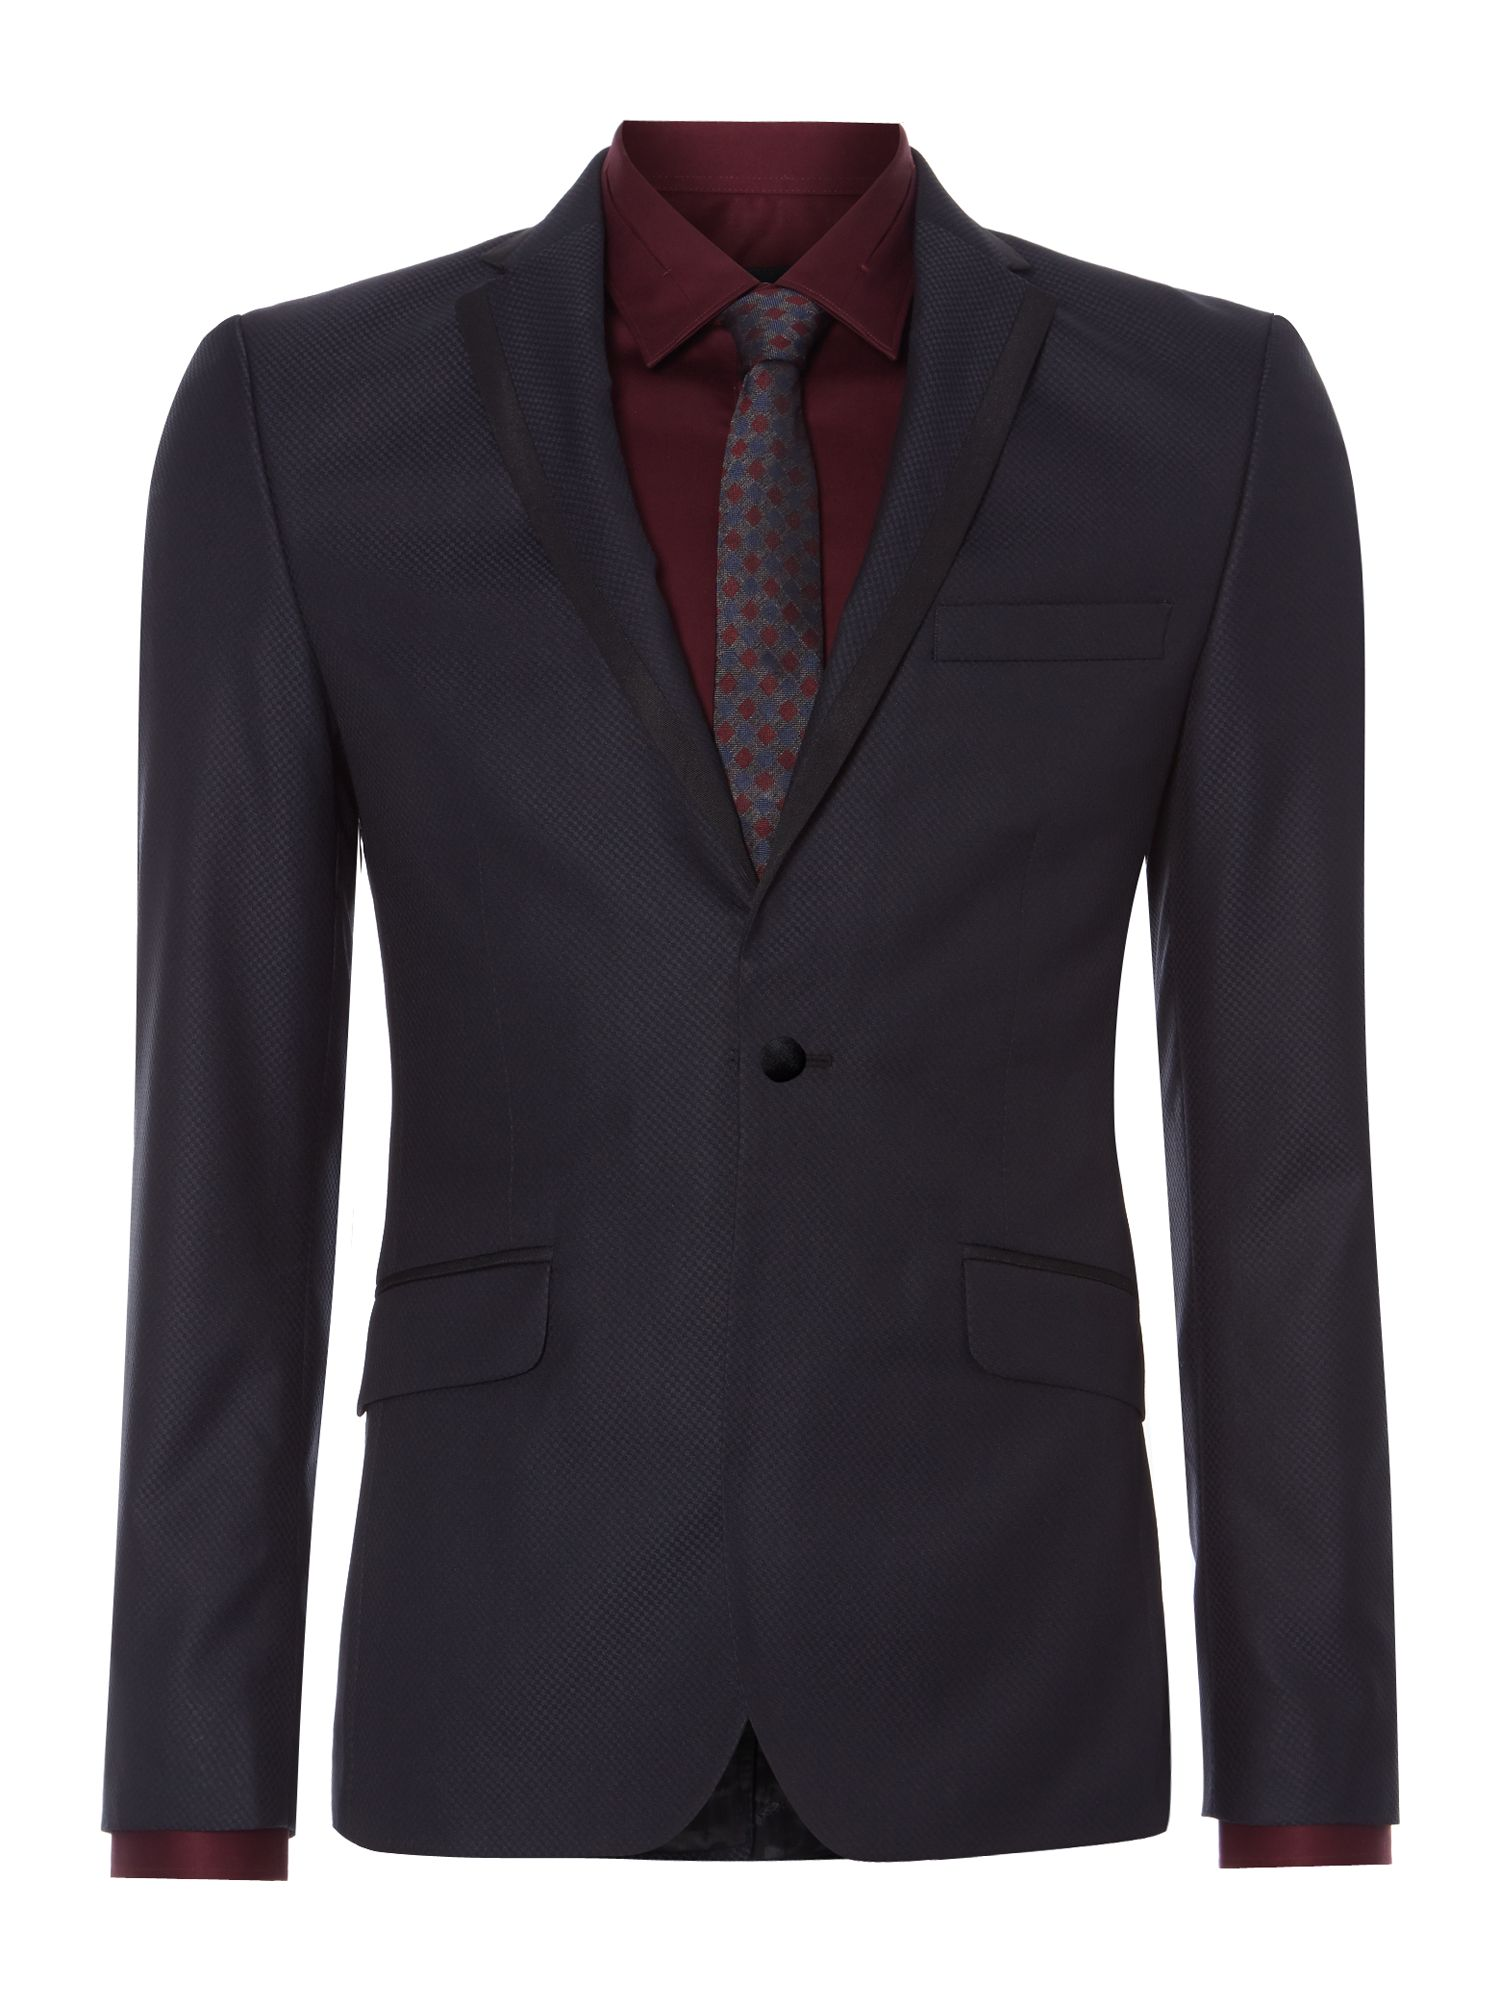 Fulton Jacquard Slim Fit Satin Trim Jacket